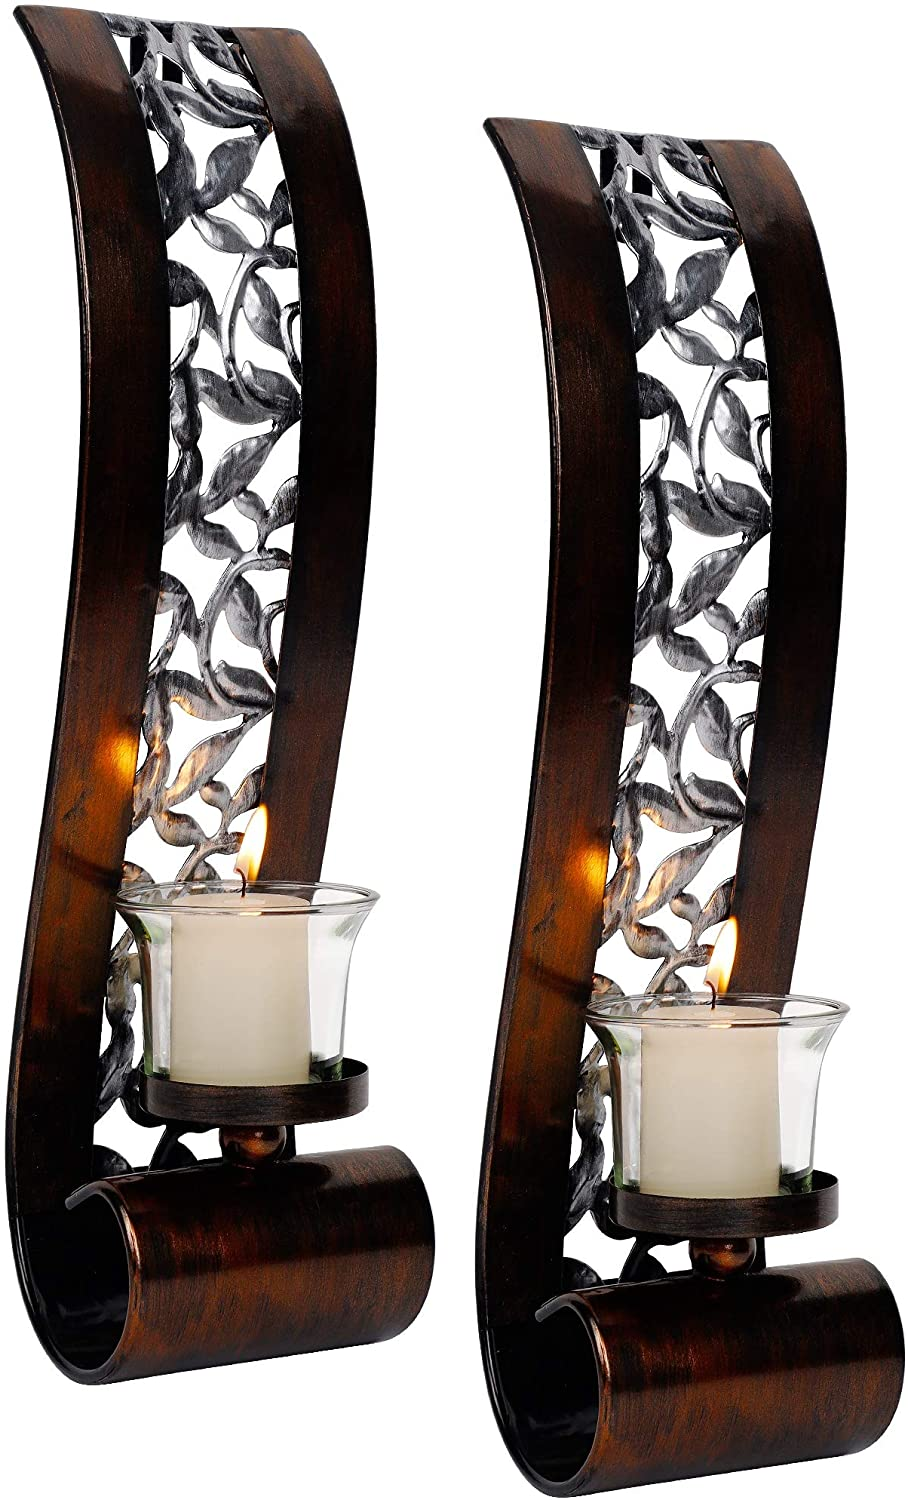 Shelving Solution Wall Sconce, with Tea Light Candle Holder Antique Bronze Style Metal Wall Art Decorations for Living Room, Bathroom, Dining Room and Office, Set of 2